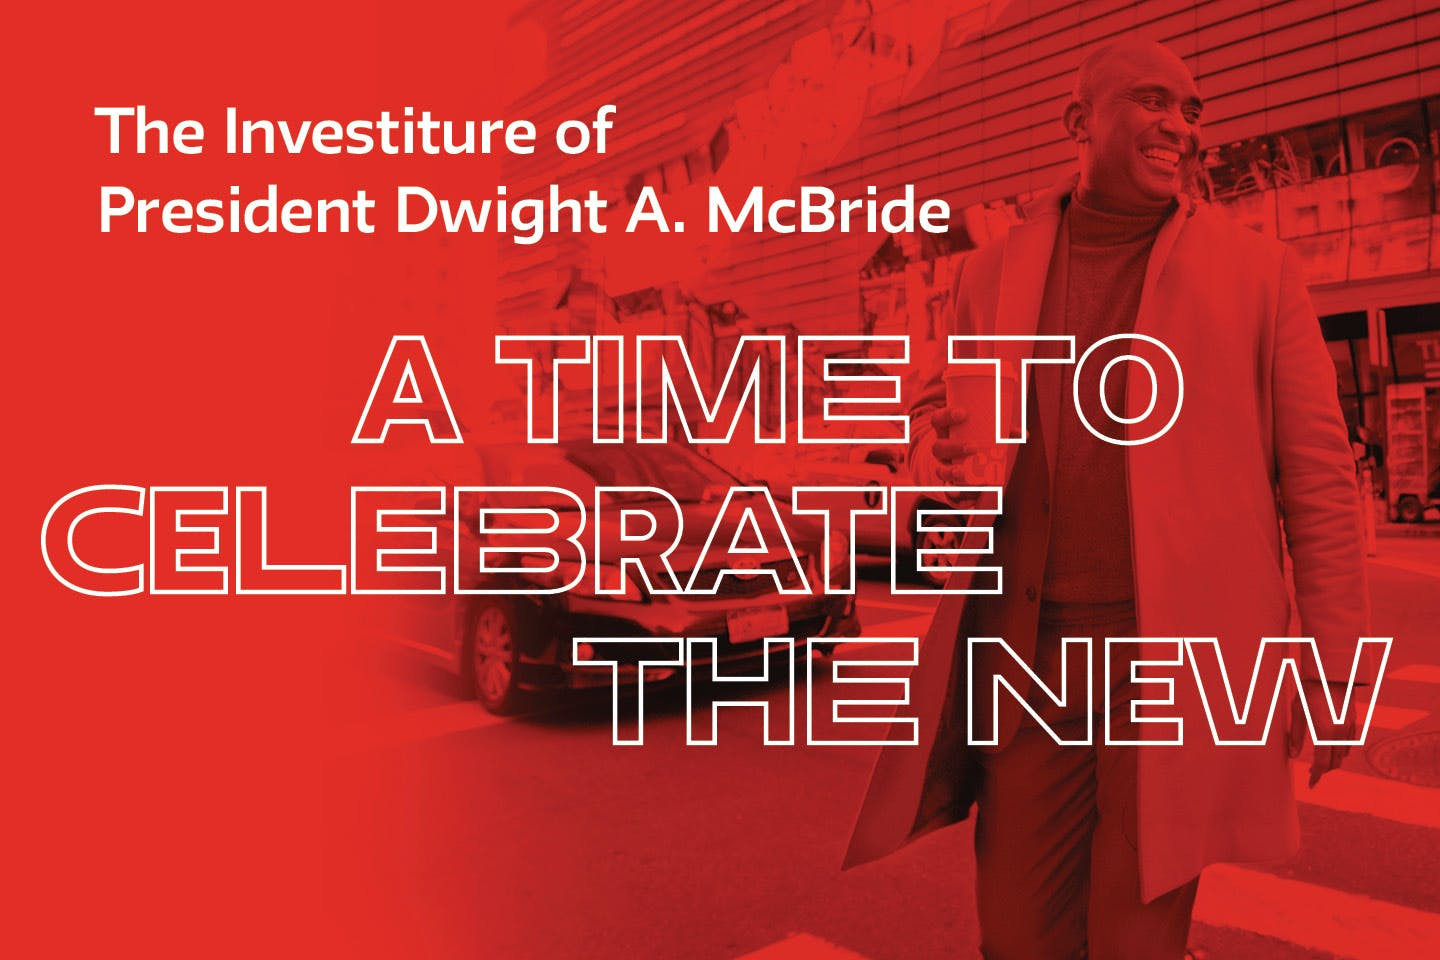 The New School Community celebrates the Investiture of President Dwight A. McBride.